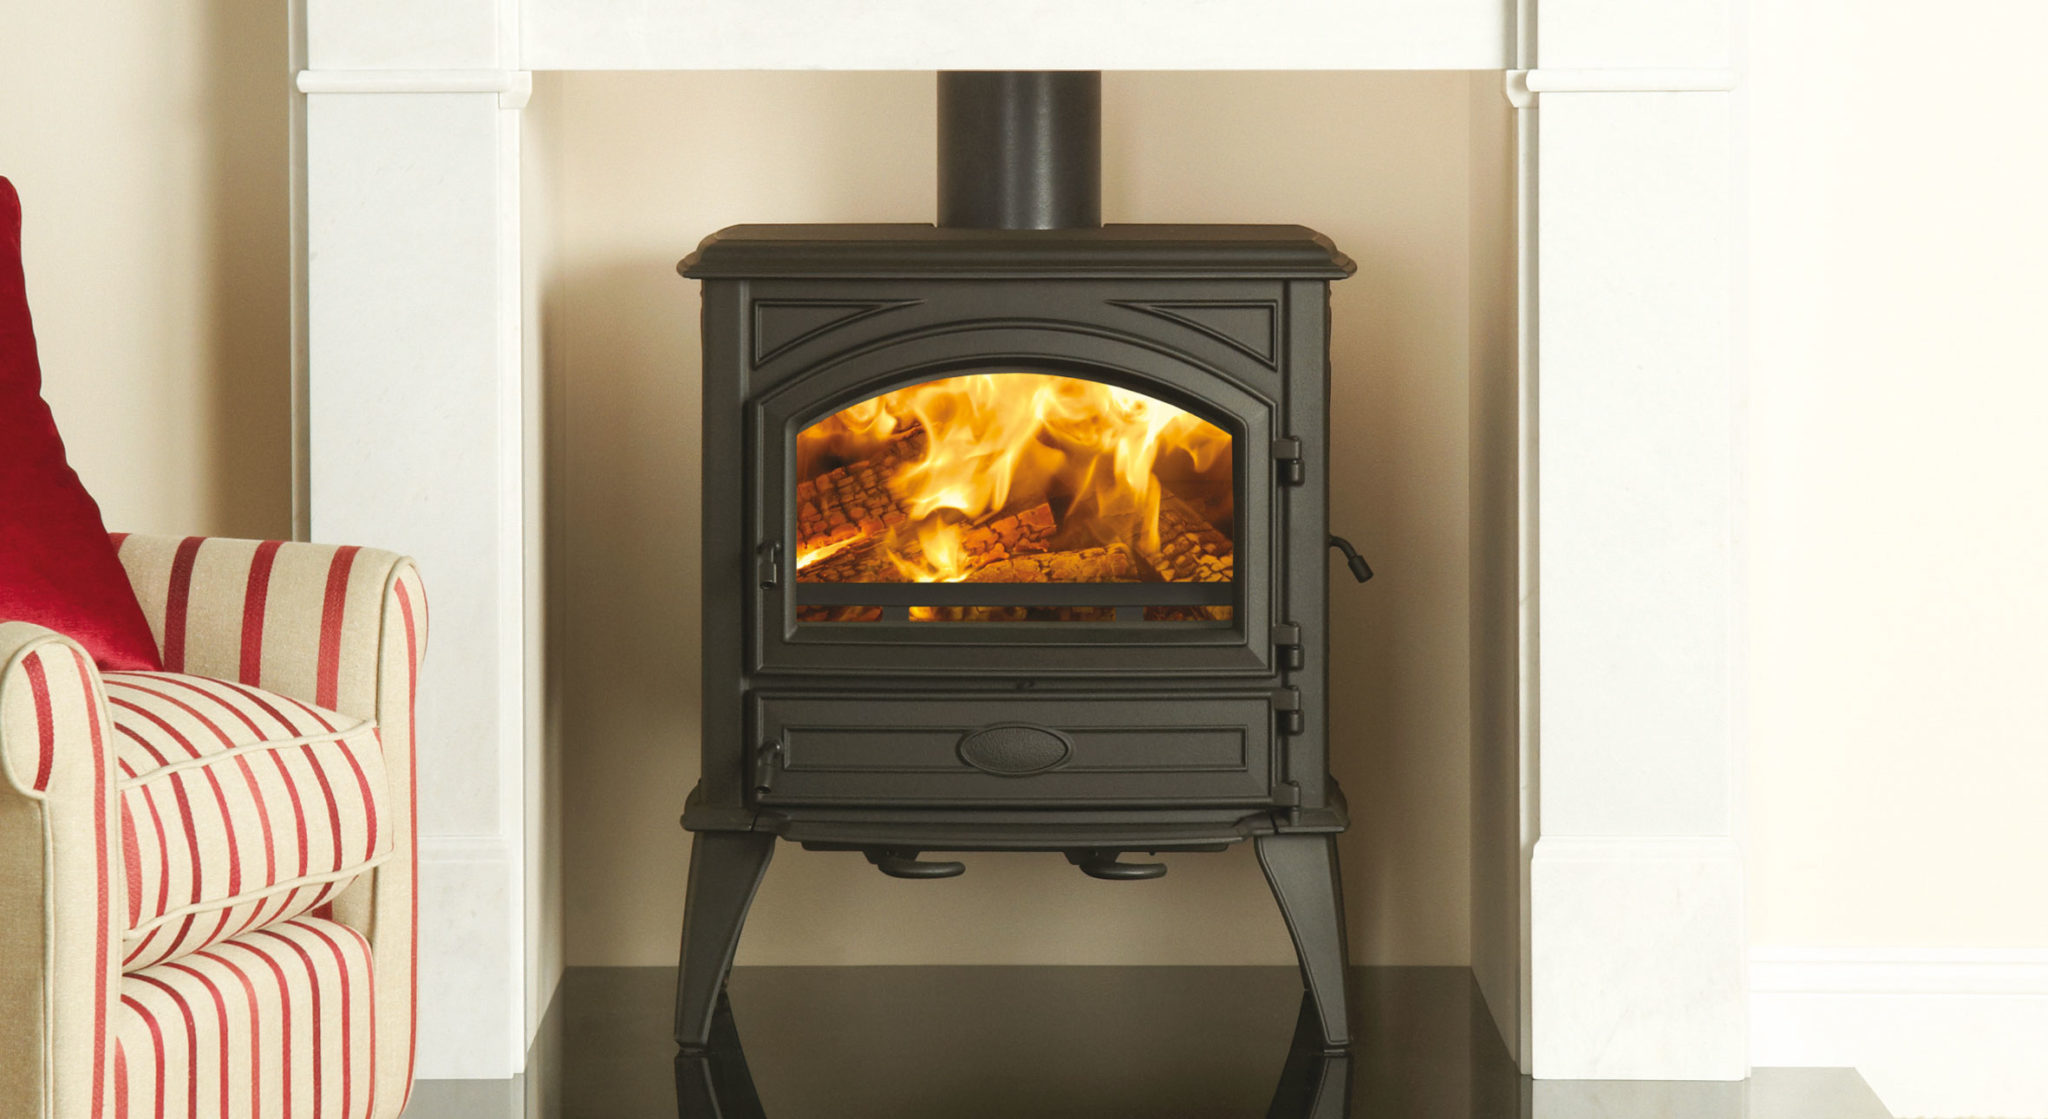 Should you choose a wood burning or multi-fuel stove?